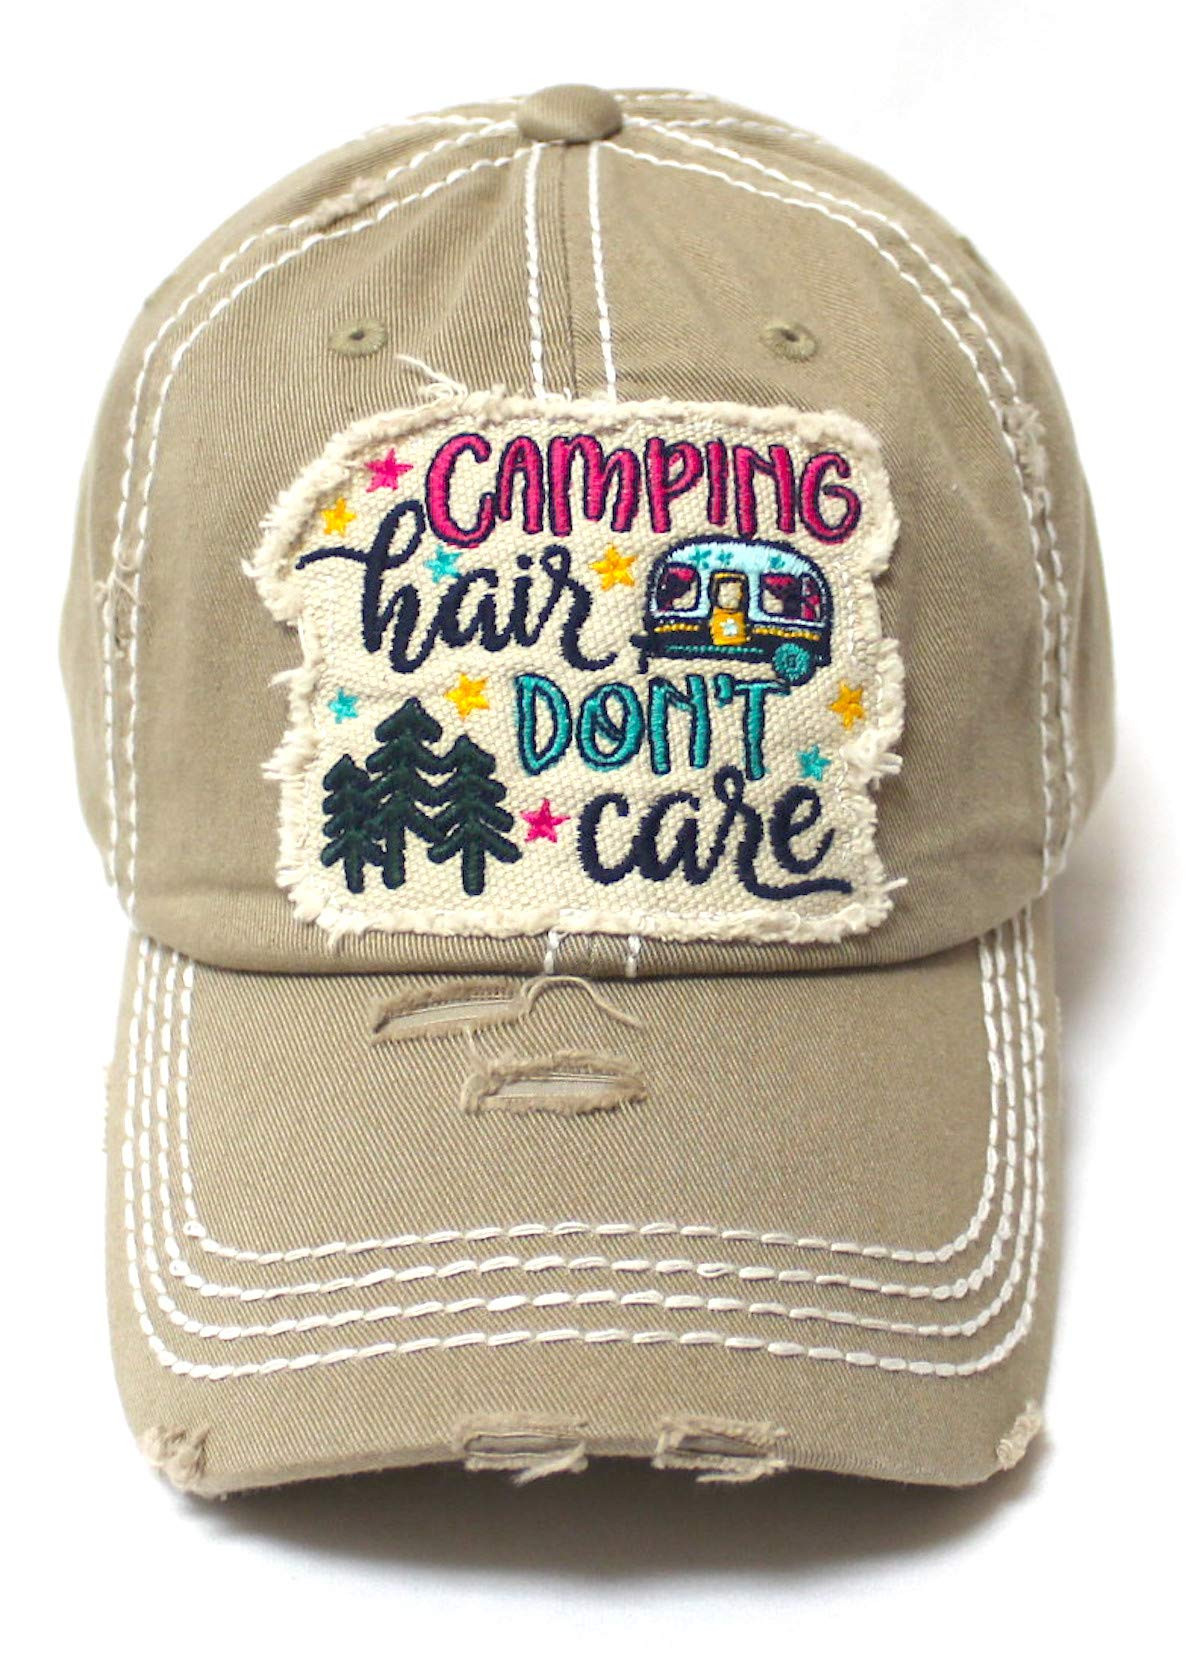 Women's Baseball Cap Camping Hair Don't Care Patch Embroidery Monogram Hat, Vintage Khaki - Caps 'N Vintage